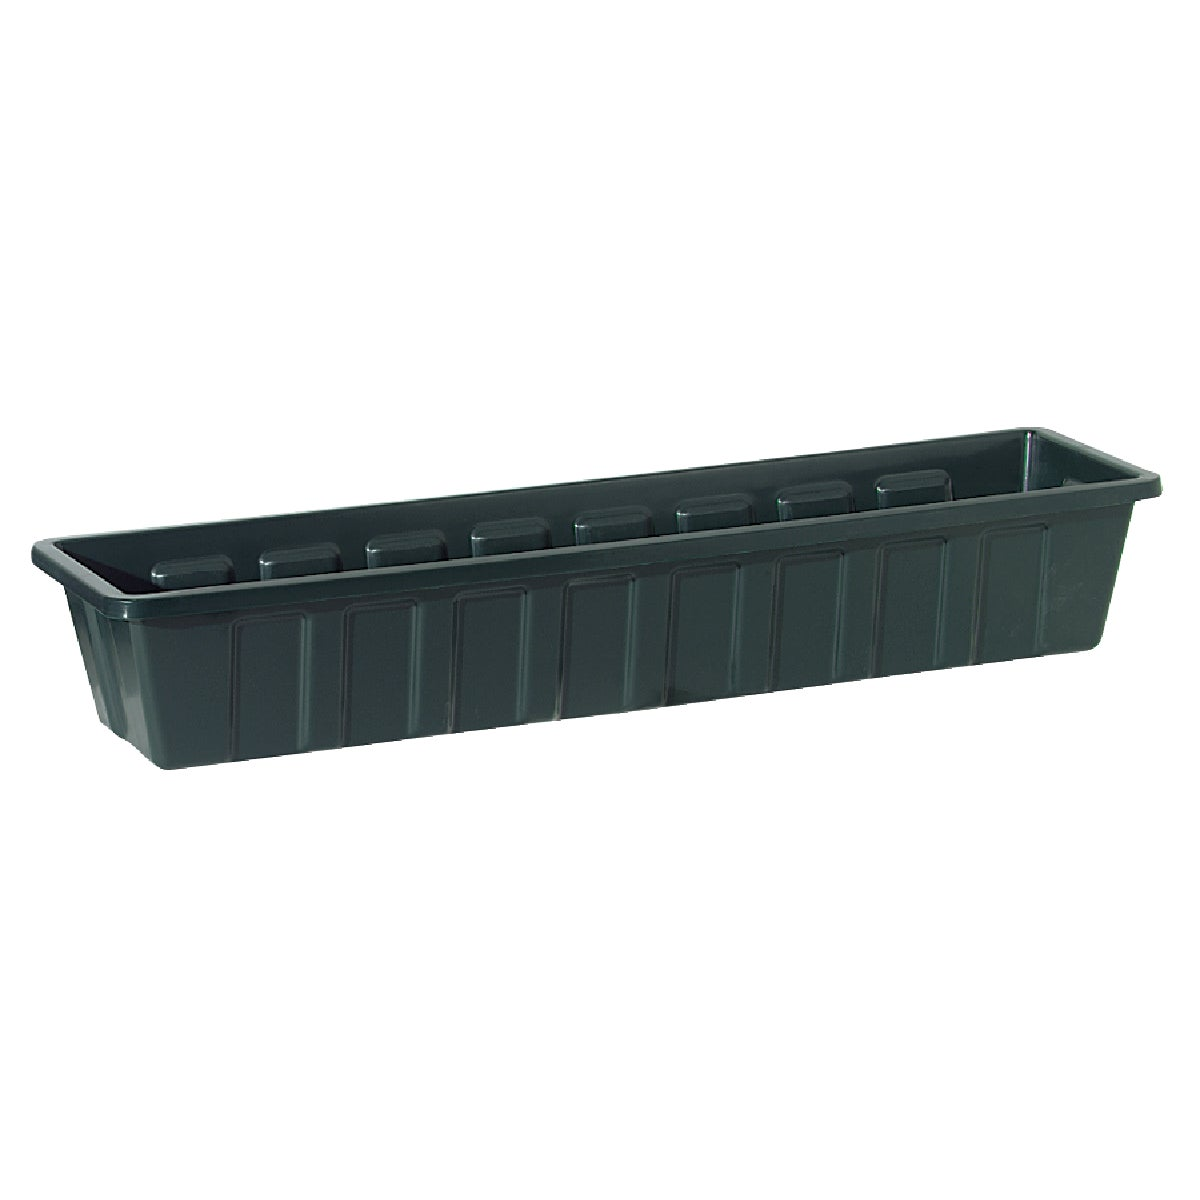 "18"" FLOWER BOX PLANTER - 0218 by Novelty Mfg Co"